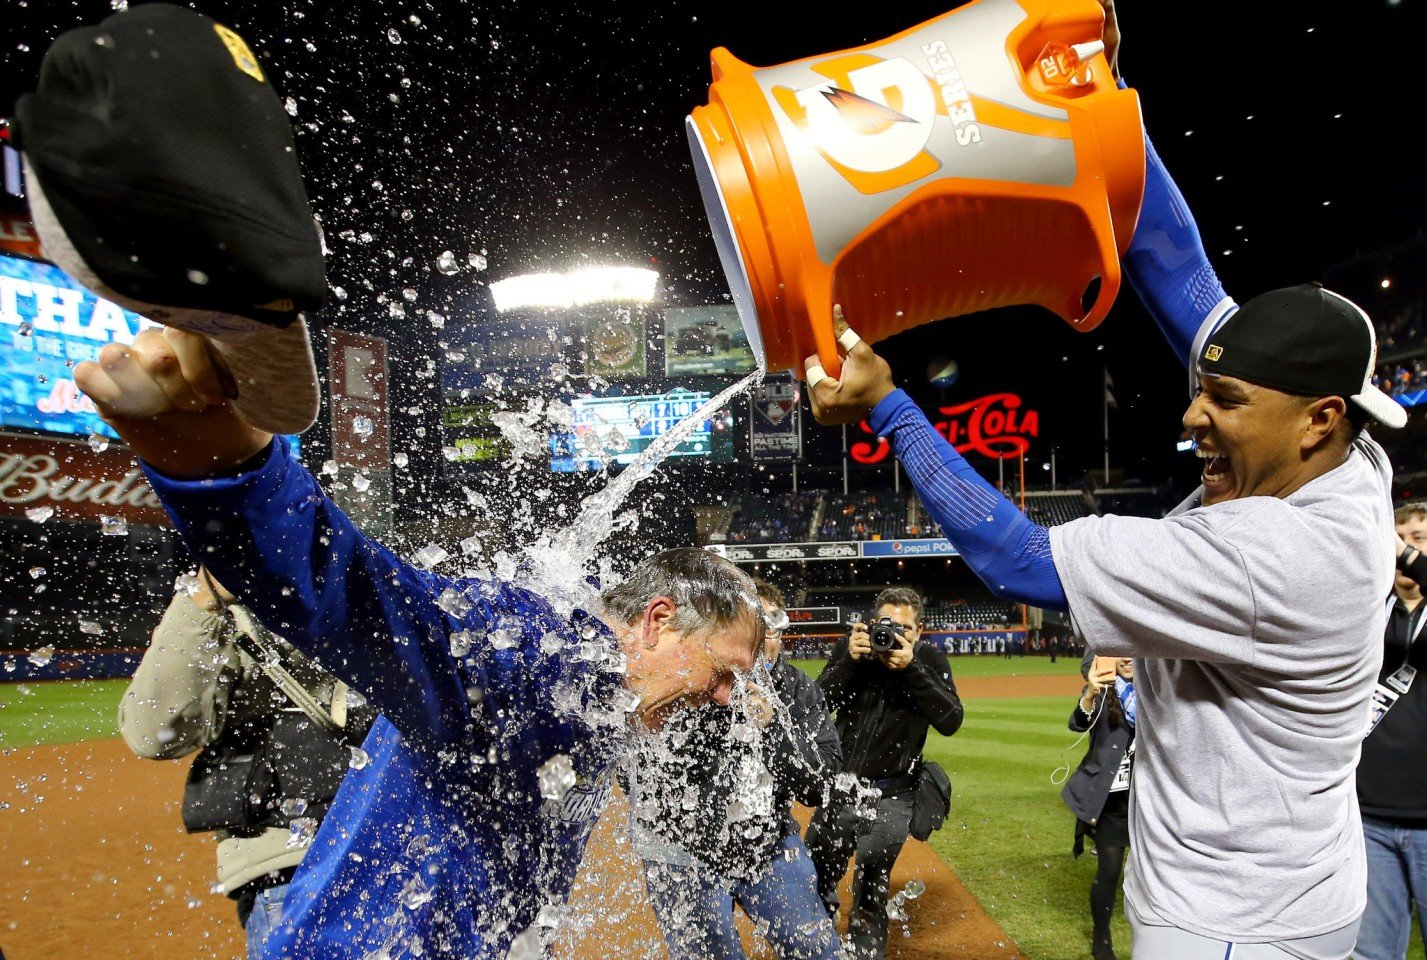 celebrating ned and the royals